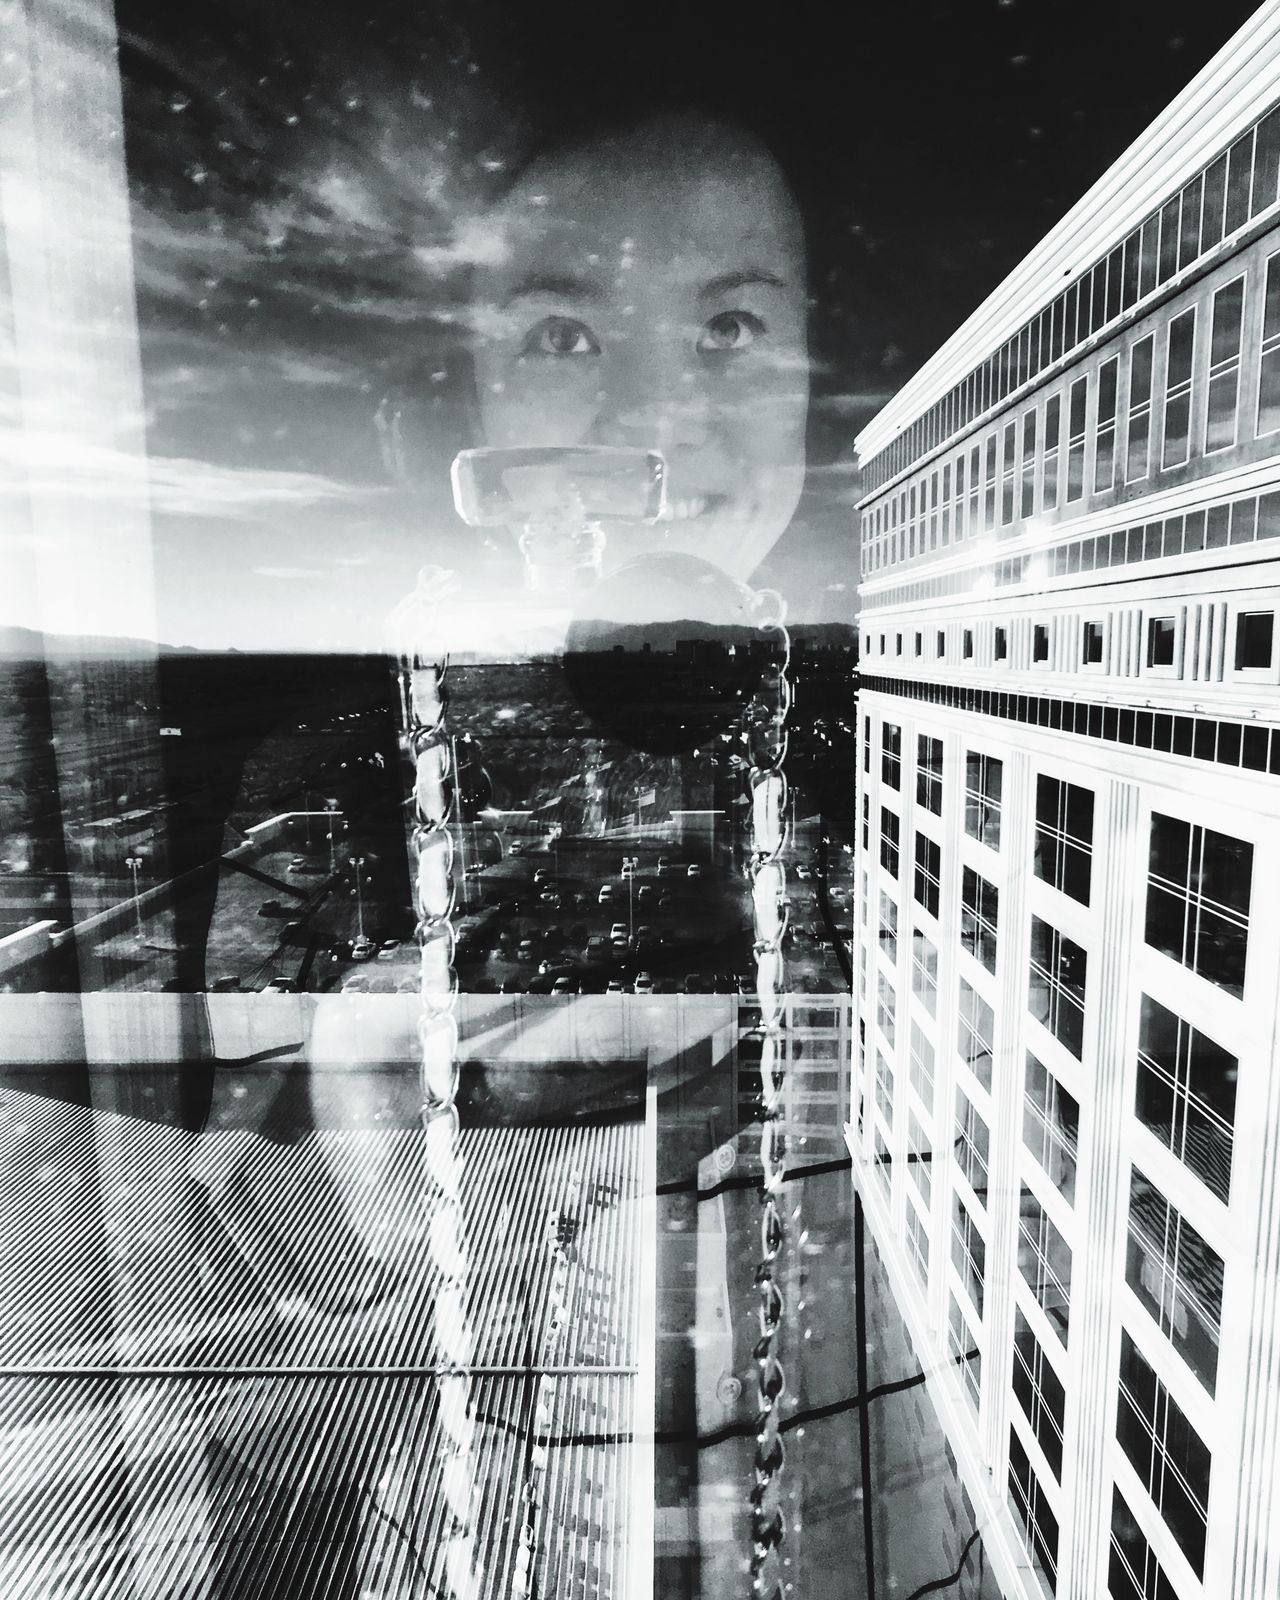 Place Of Heart Glass Reflection Glass Windows With Reflections Glass Windows Sky And Clouds Blackandwhite Photography Reflected Selfportrait Reflection Reflected In Glass